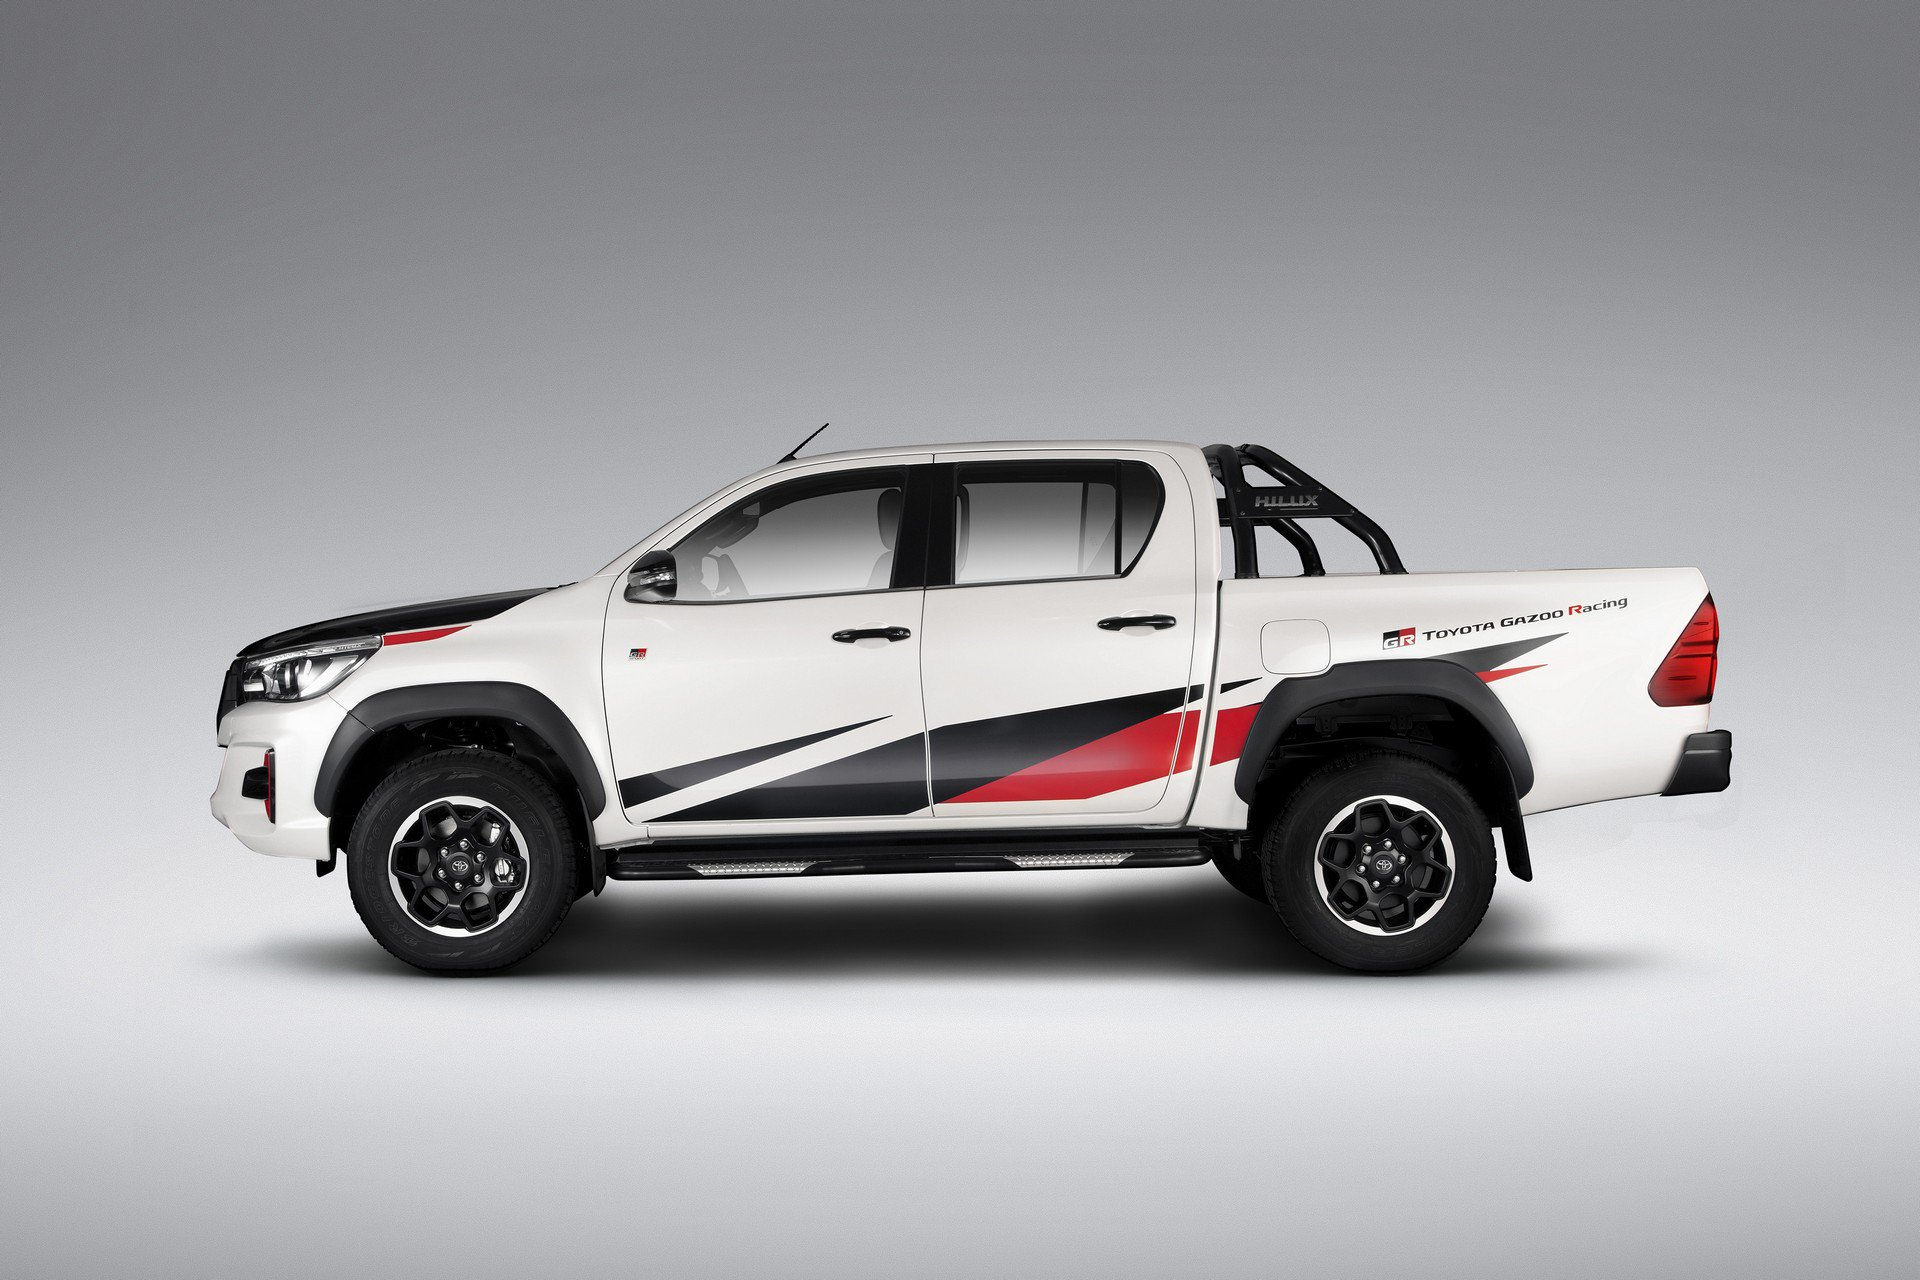 ngam-toyota-hilux-gr-sport-dam-chat-the-thao-chi-san-xuat-420-chiec